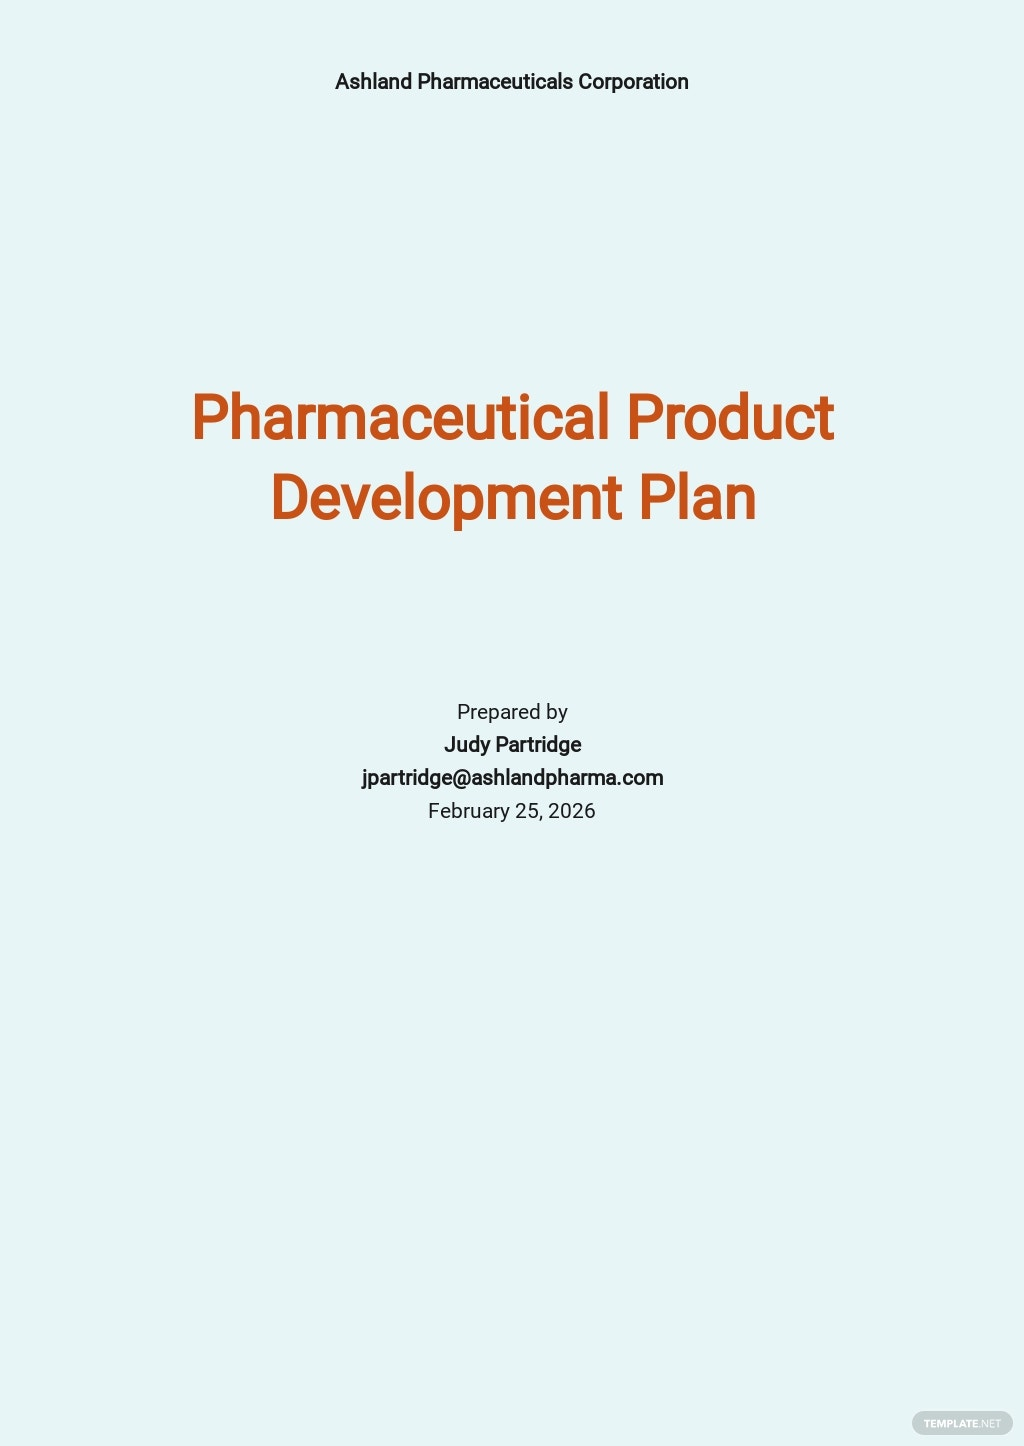 Pharmaceutical product Development Plan Template